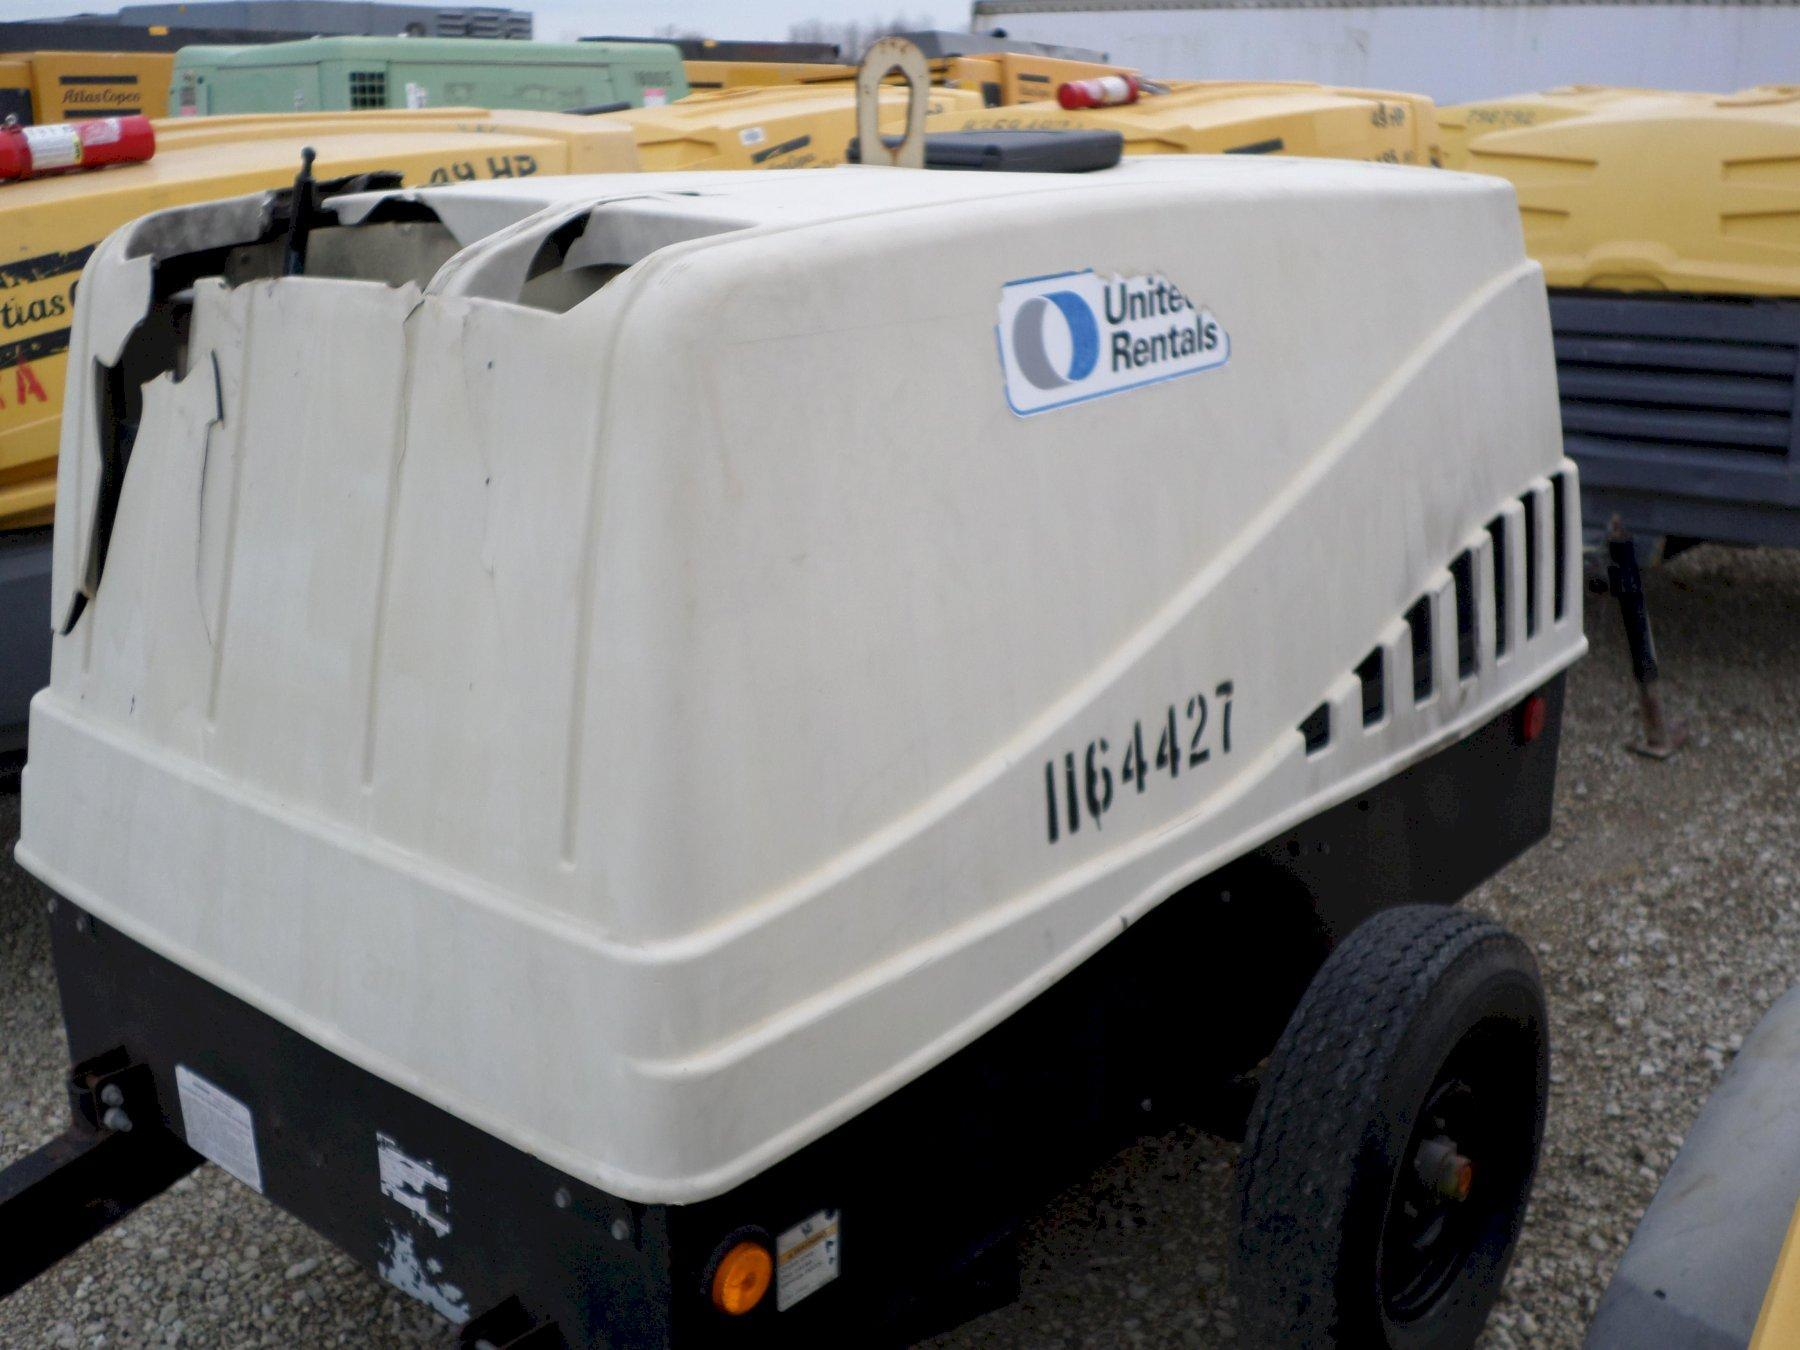 185 CFM DOOSAN MODEL #JD185 PORTABLE AIR COMPRESSOR, NEW 2010: STOCK #12145